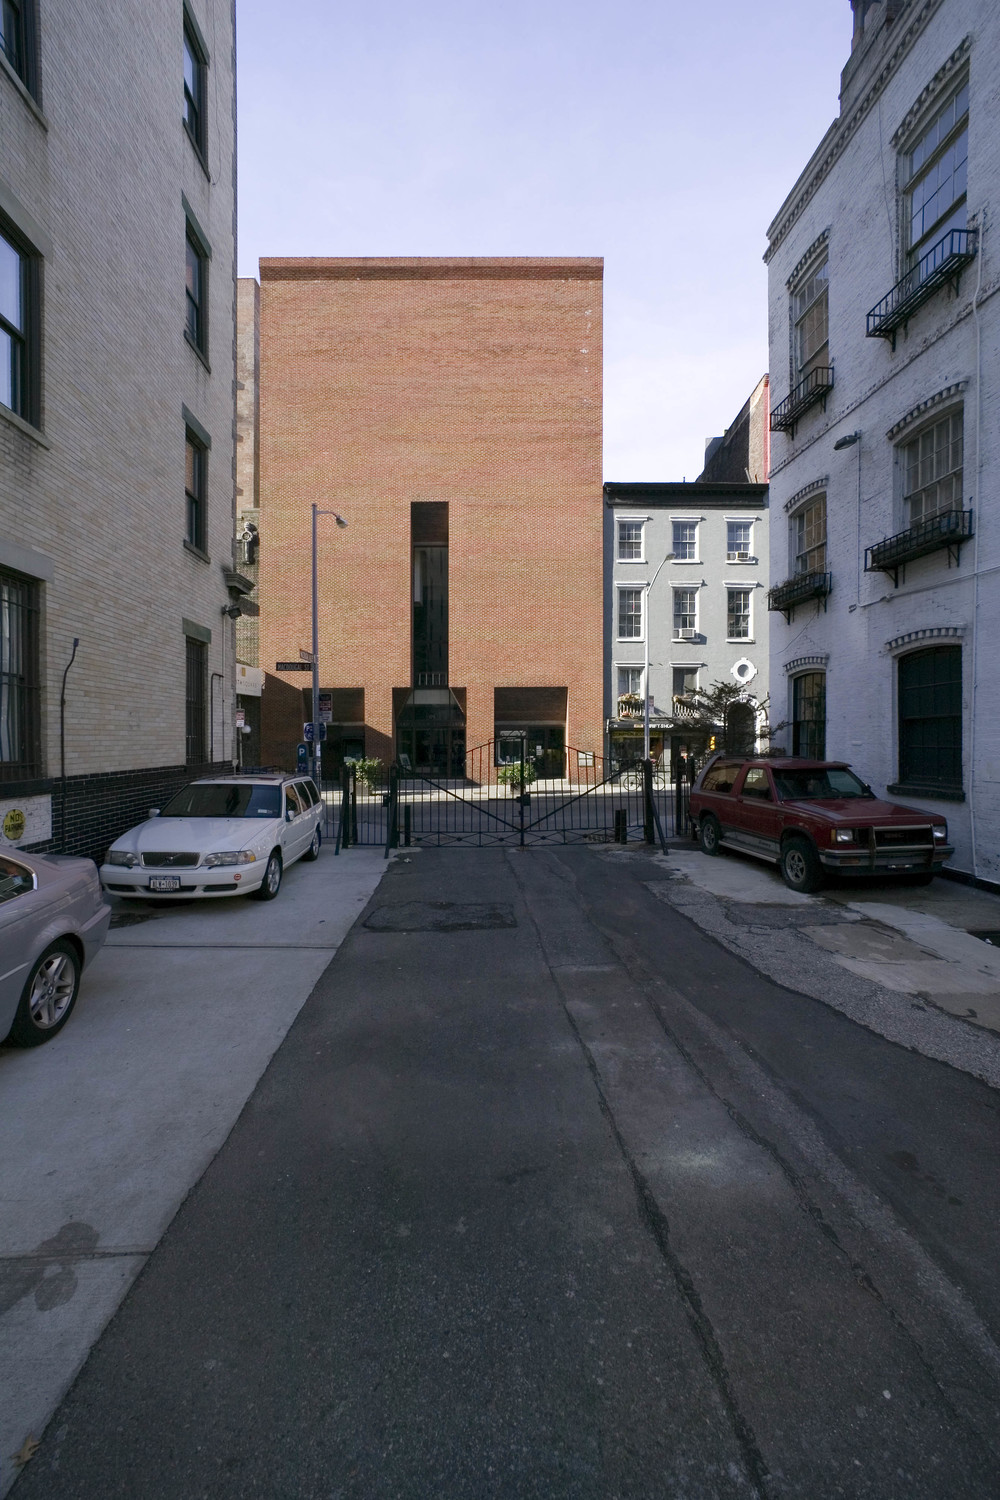 171 MacDougal, Rear View